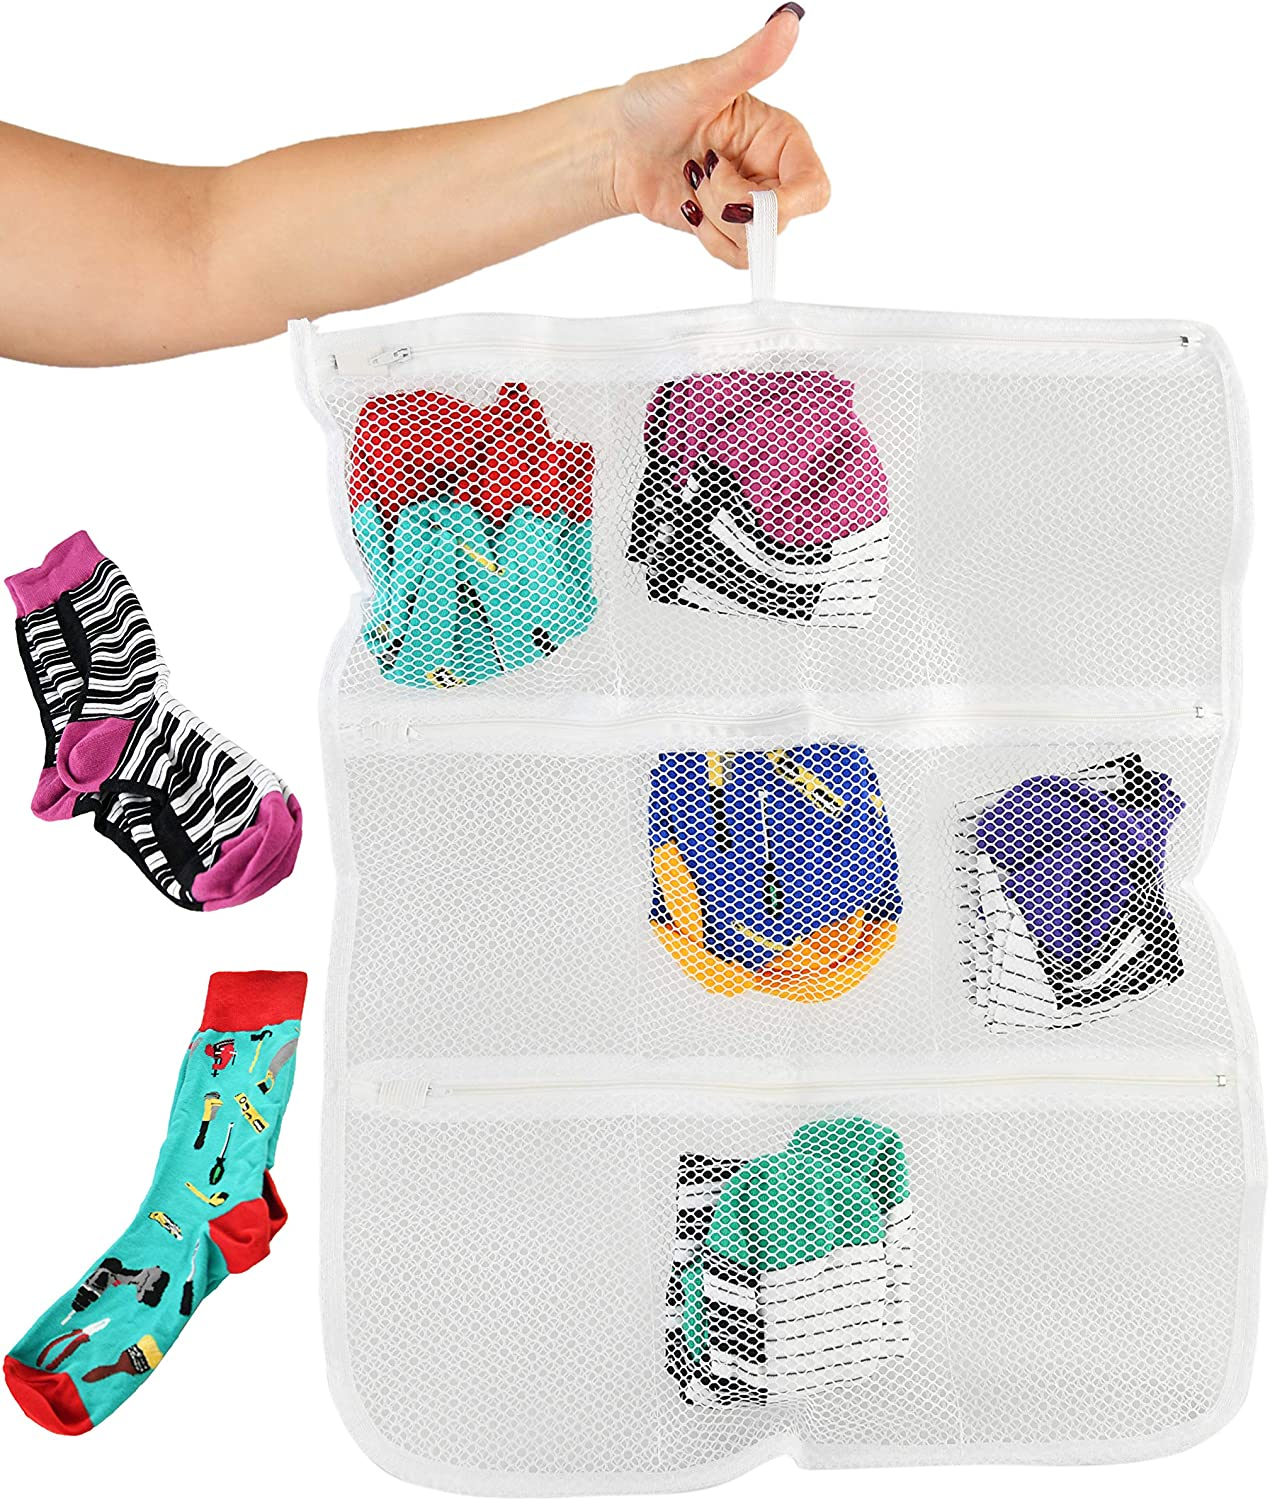 Home-X Heavy-Duty Laundry Sorter Bag, Clothing Organizer for Socks and Delicates